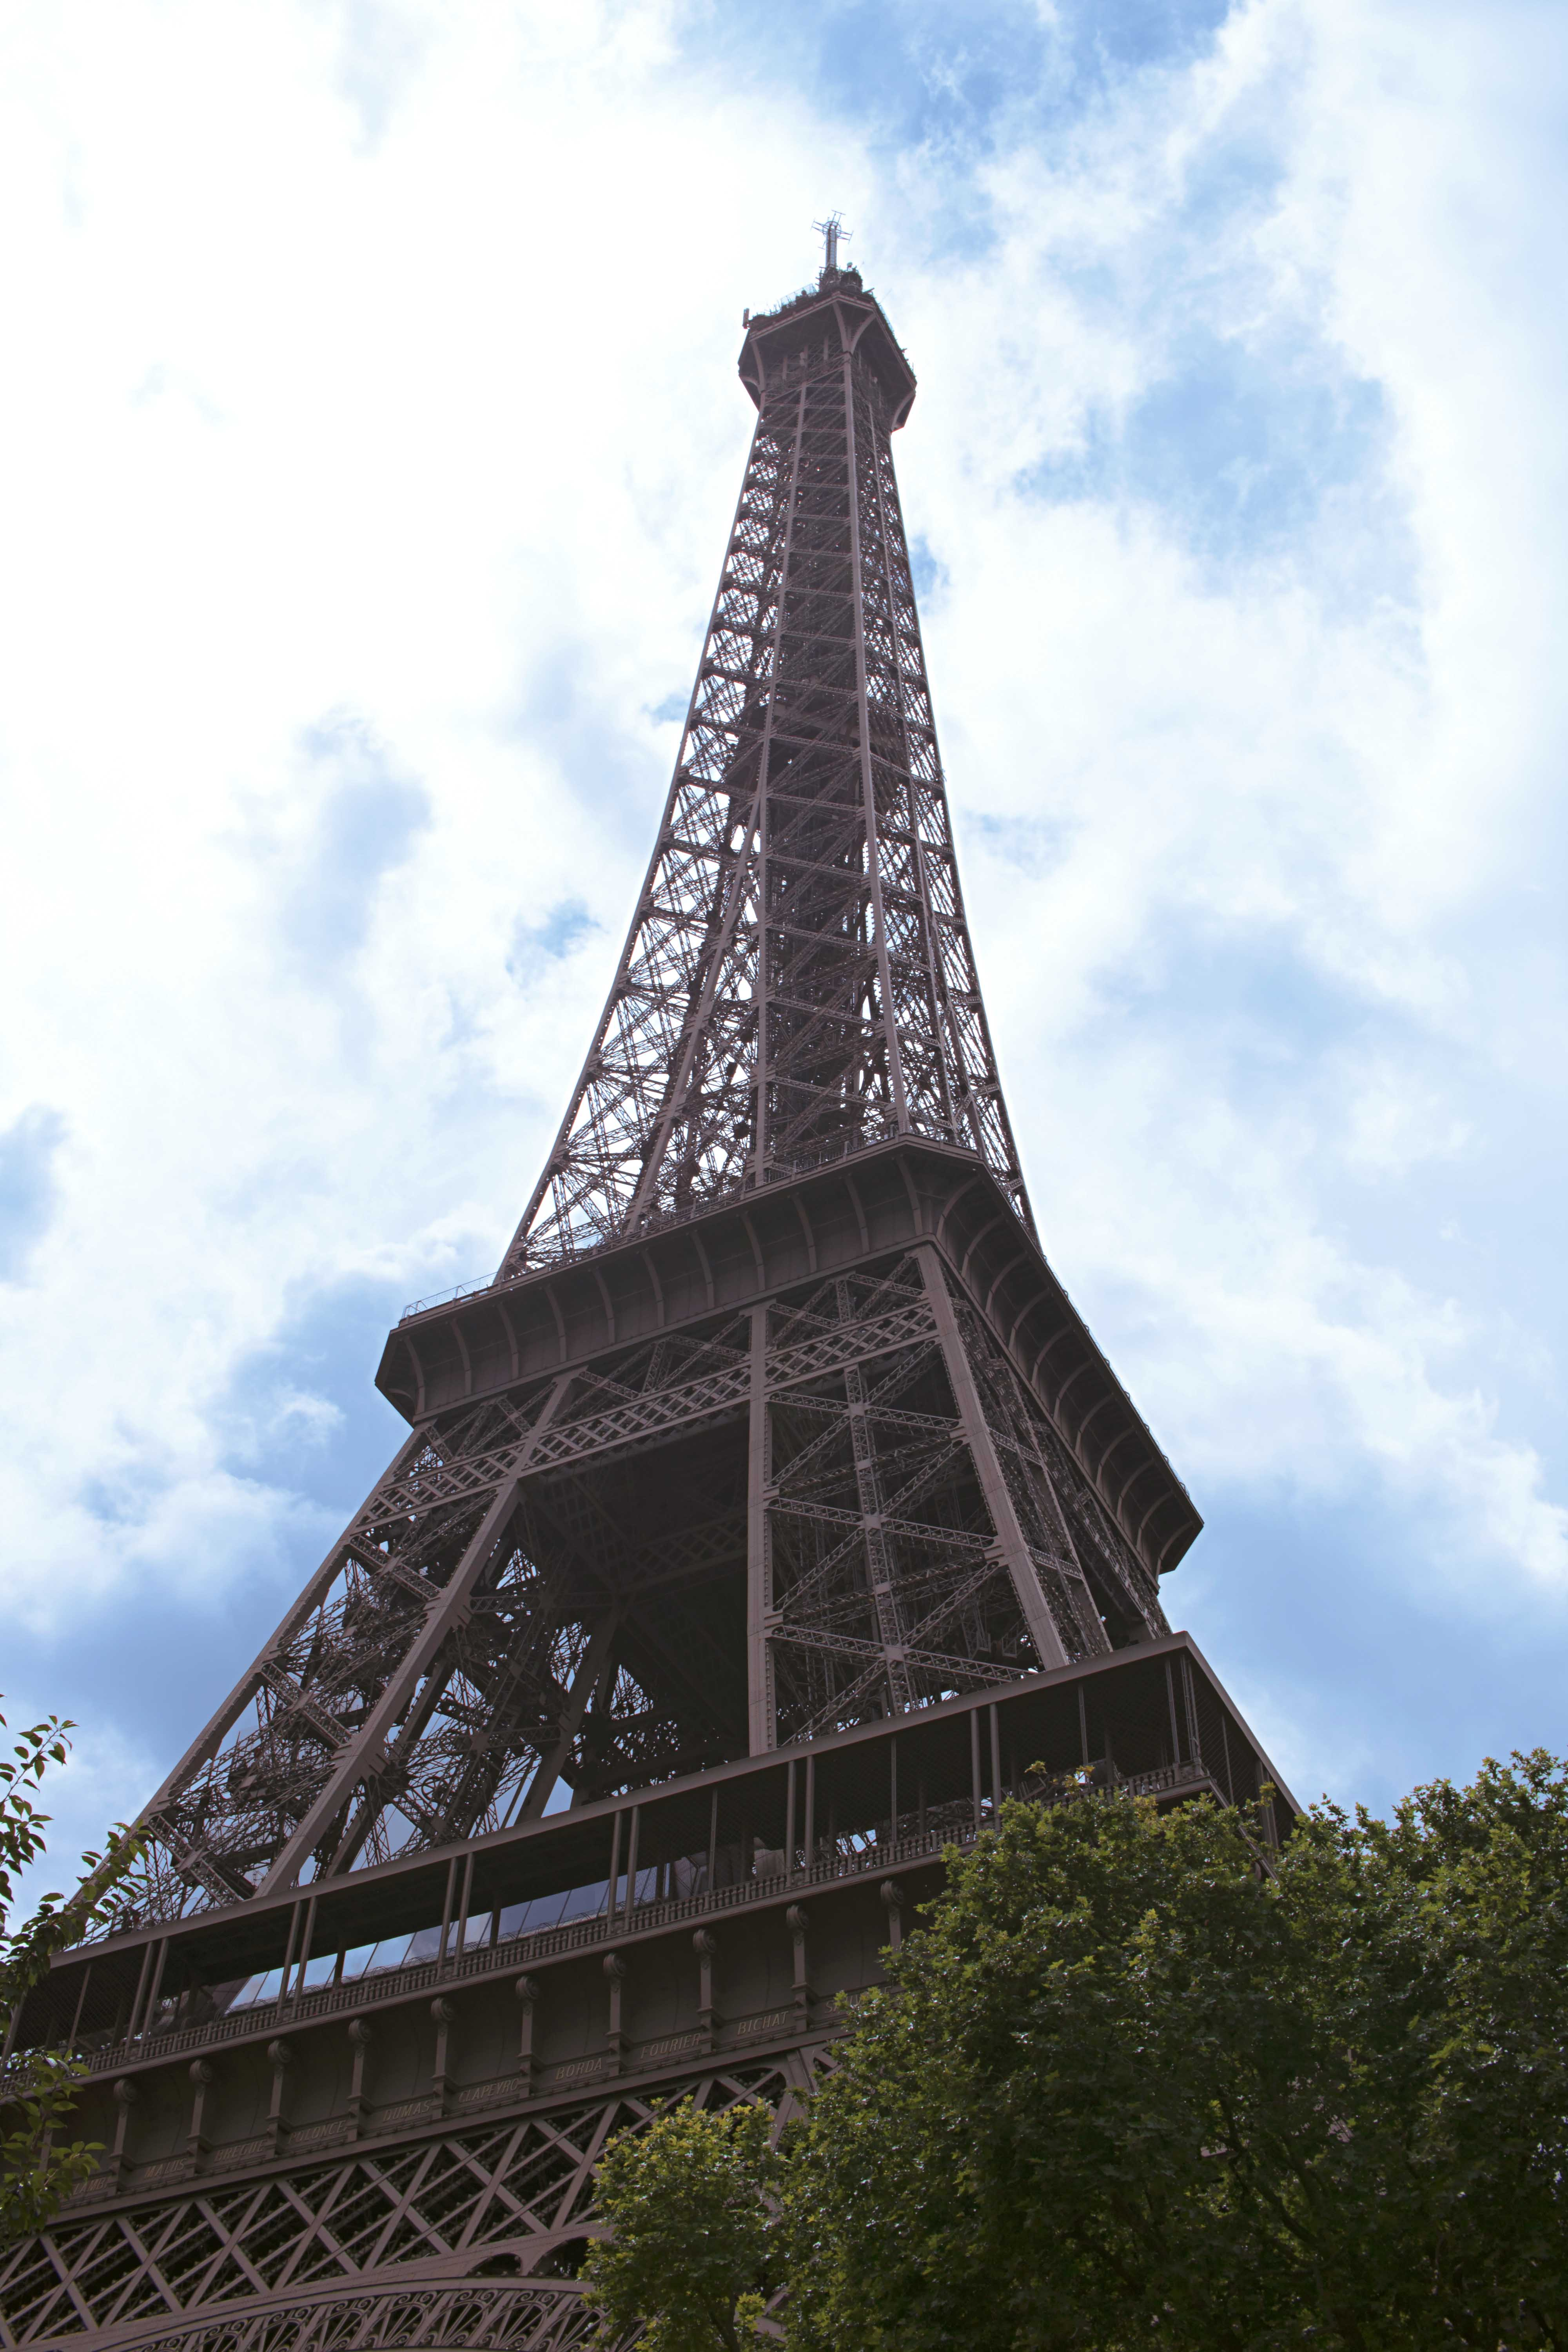 Structural Photography of The Eiffel Tower